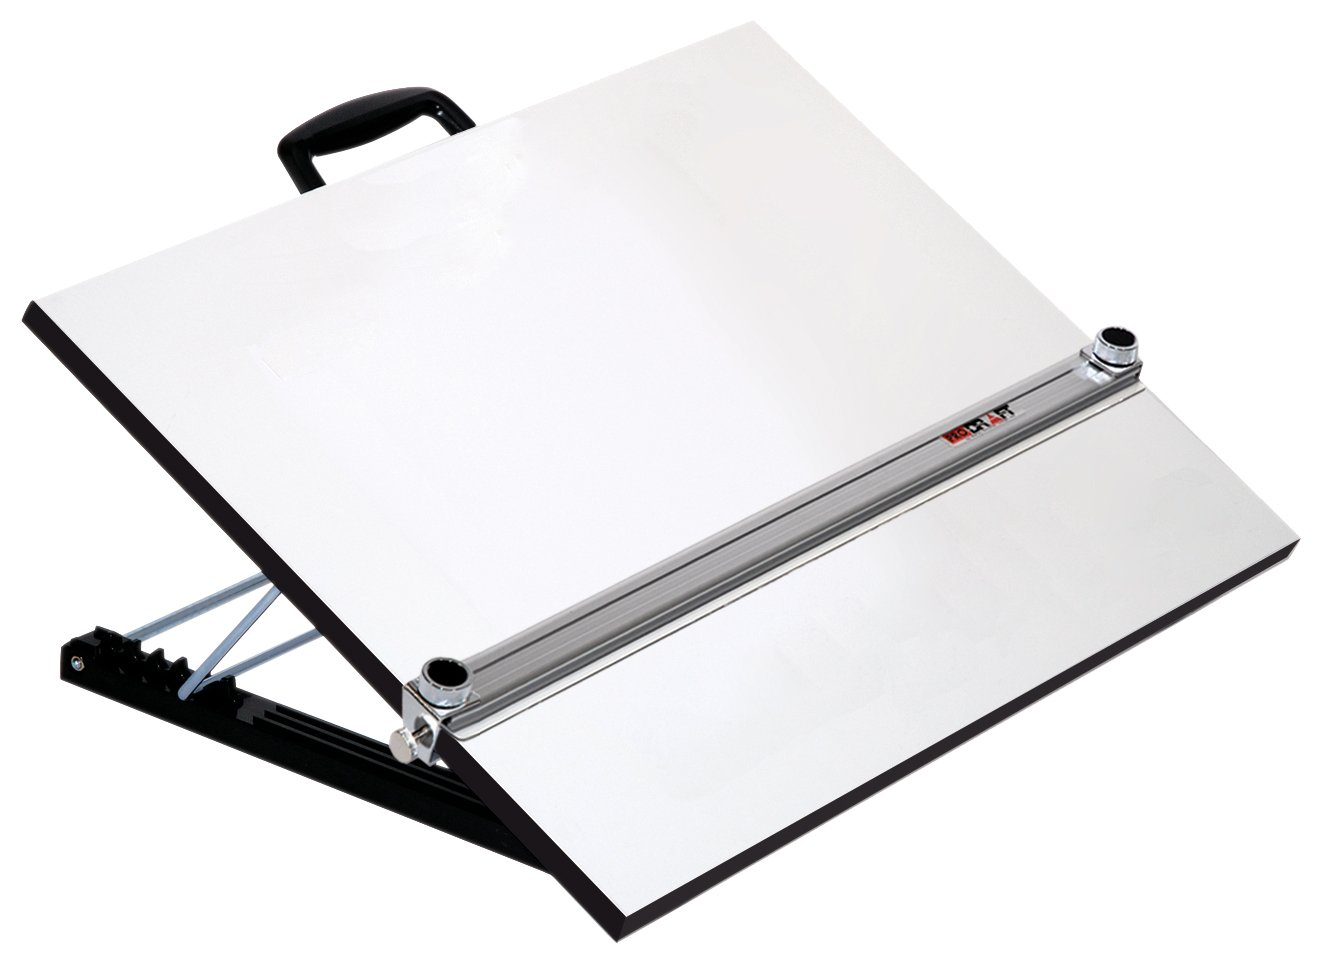 Martin Universal Design Adjustable Angle Parallel Drawing Board, XX Large, White by Martin Universal Design